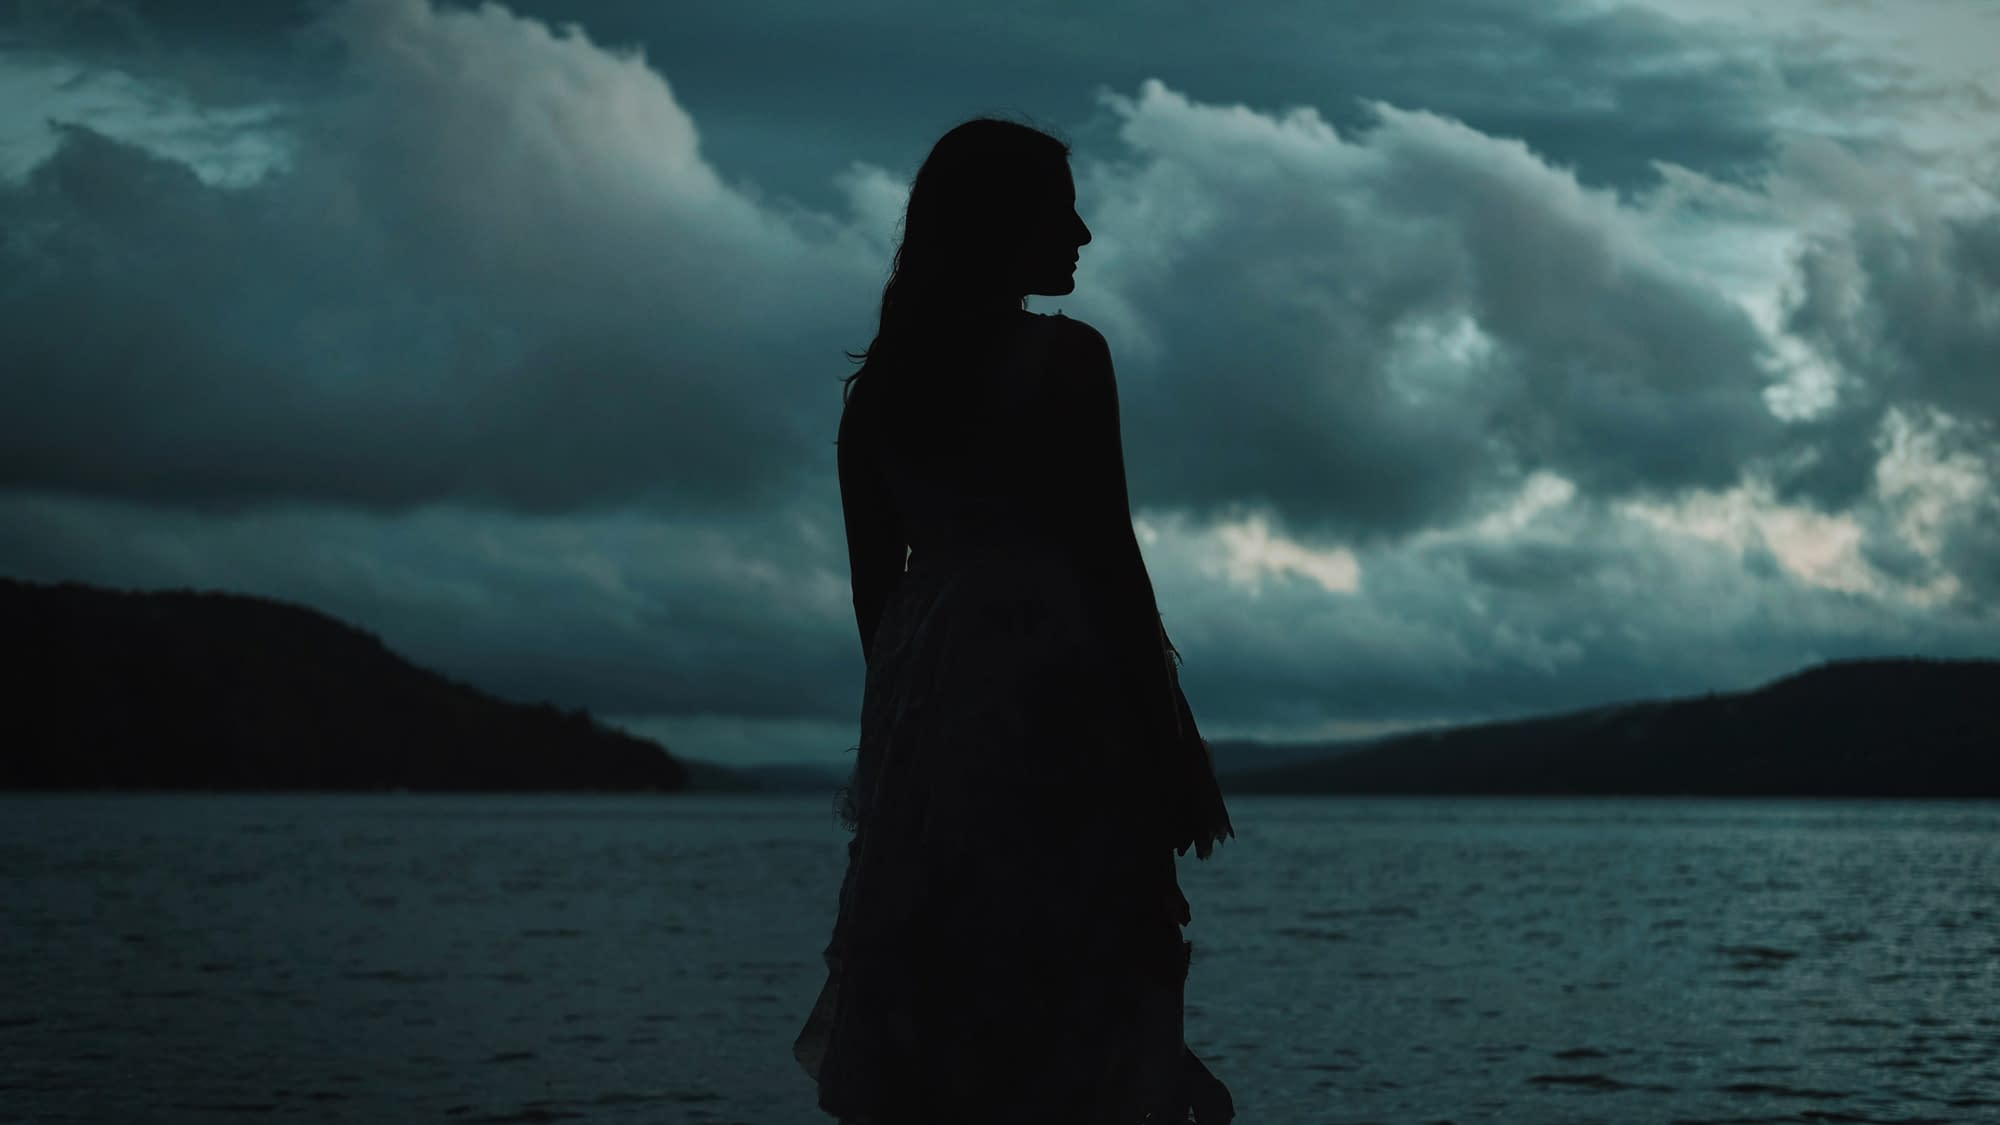 Shudder Acquires Mary Shelley Drama Film A Nightmare Wakes